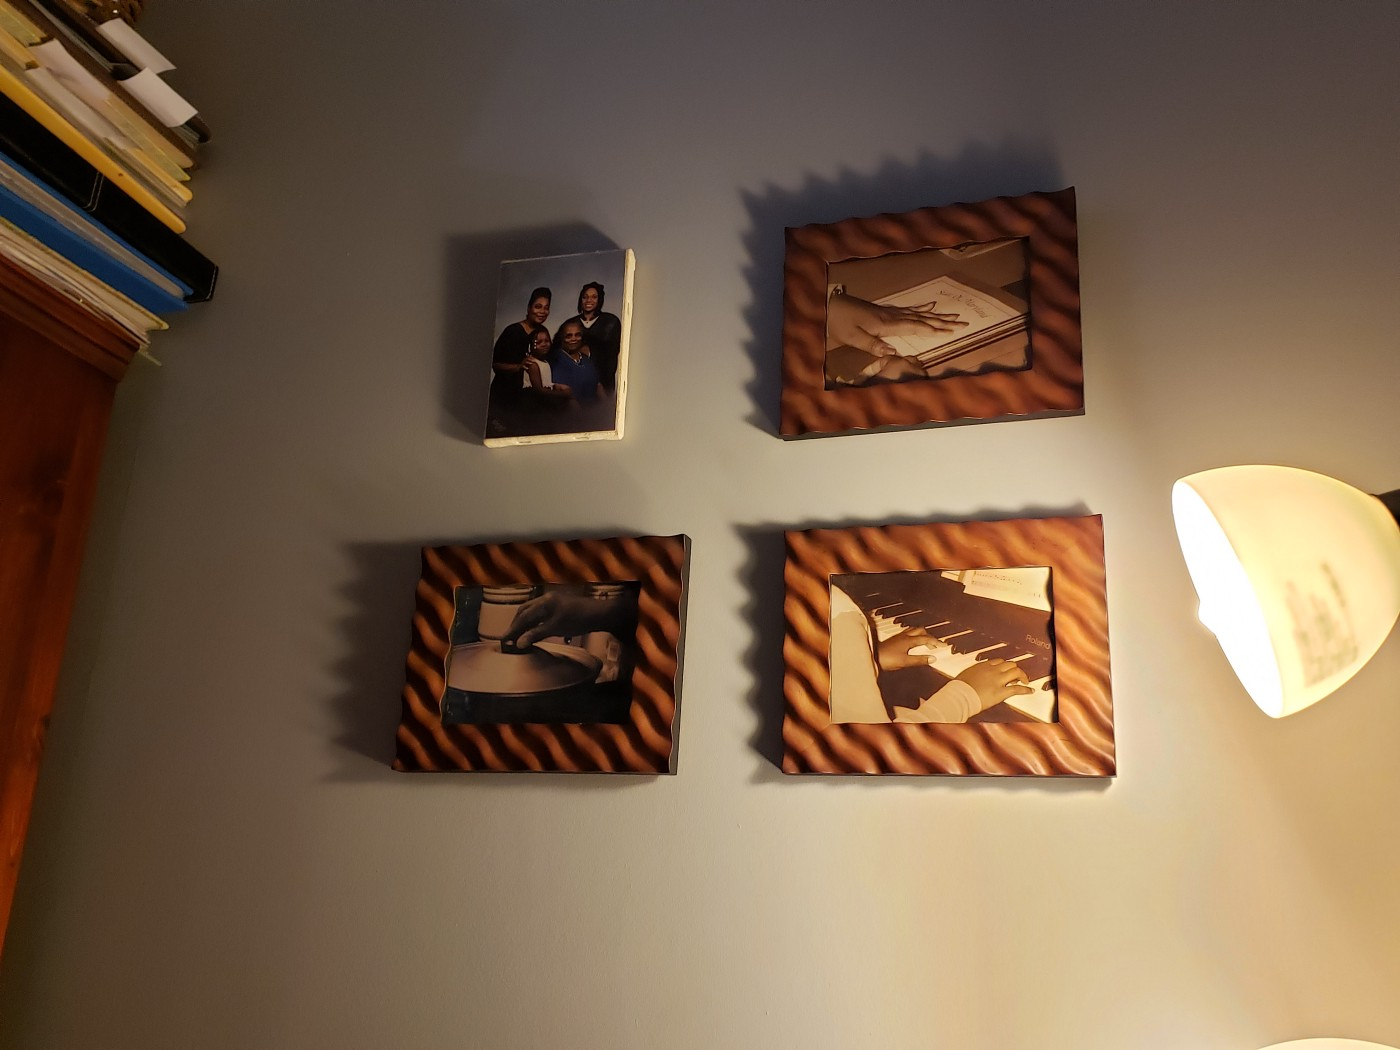 Family portraits hanging on the wall with dim lighting.